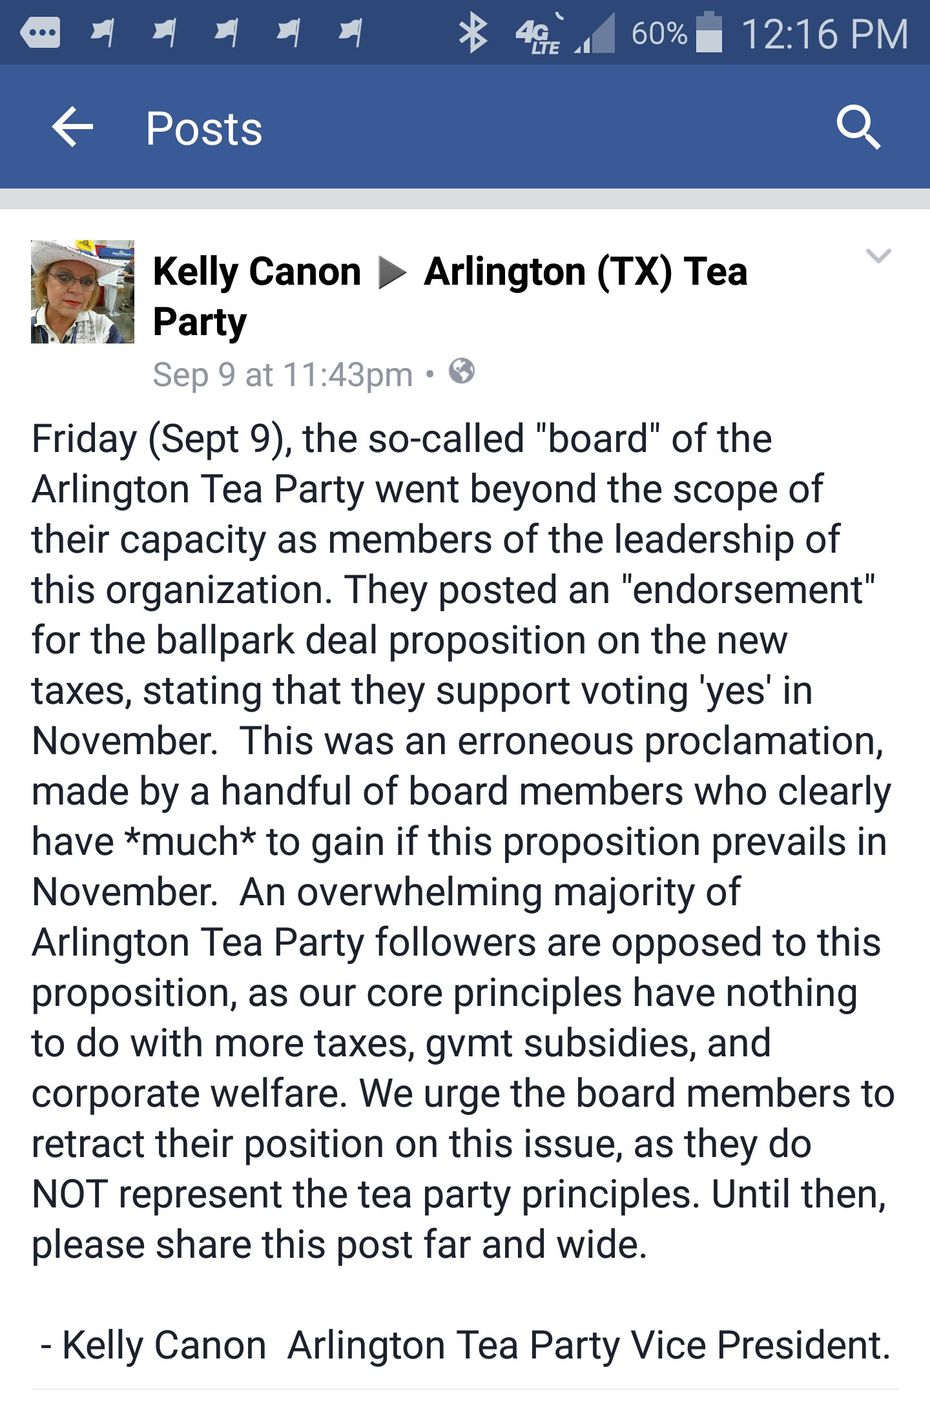 Kelly Canon posted this on Facebook after the Arlington Tea Party's board of directors voted in support of building a new Rangers stadium with taxpayer dollars.